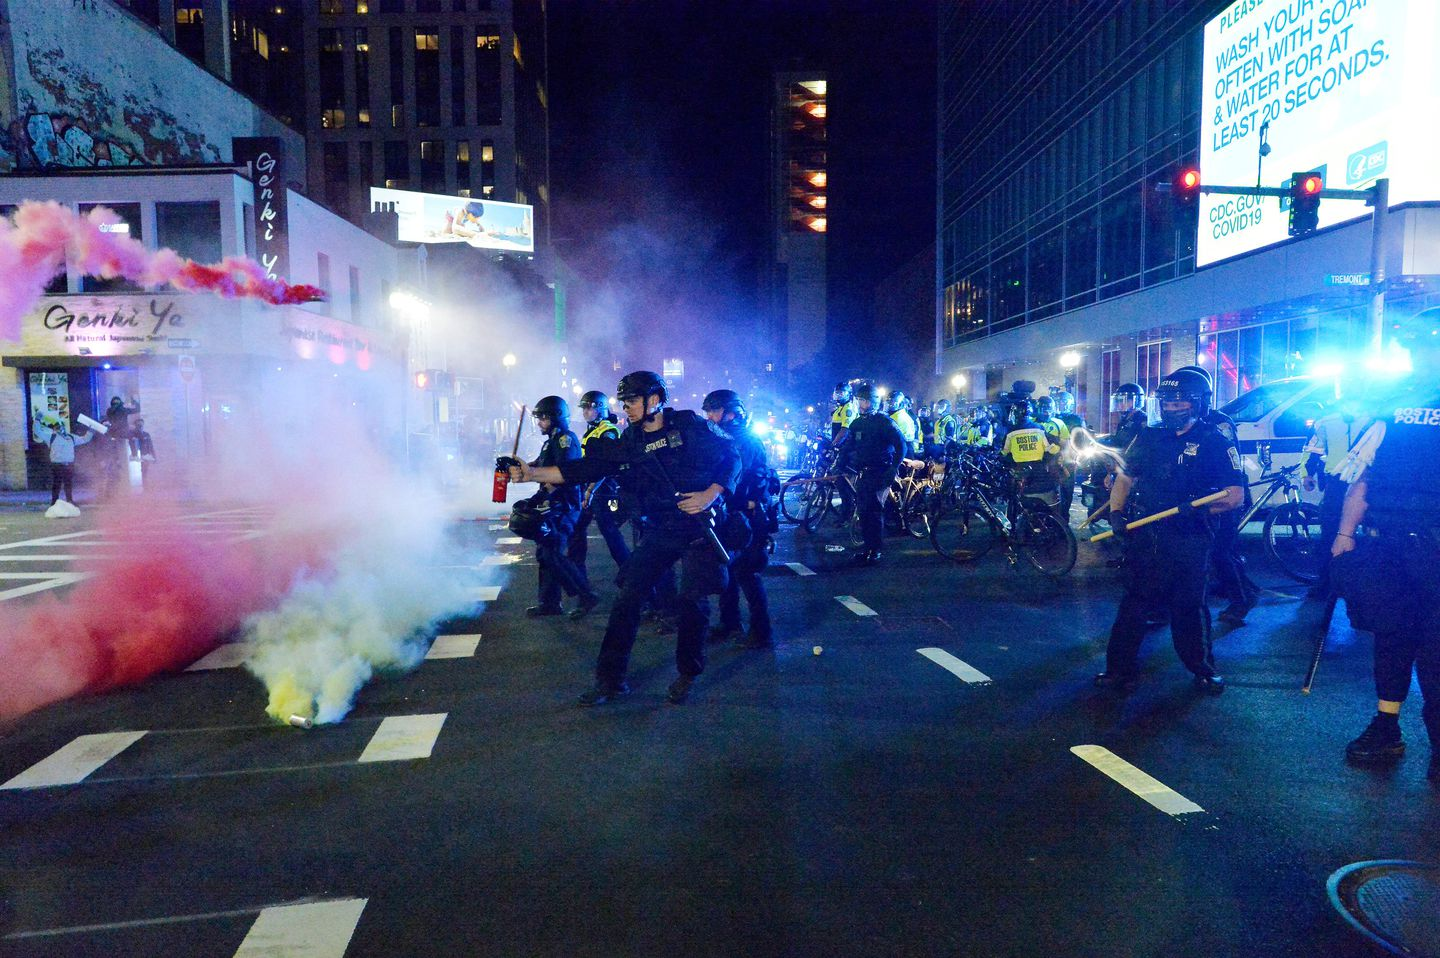 Smoke rose around police as they shot pepper spray during clashes with protesters near Downtown Crossing after a demonstration over the death of George Floyd on May 31.